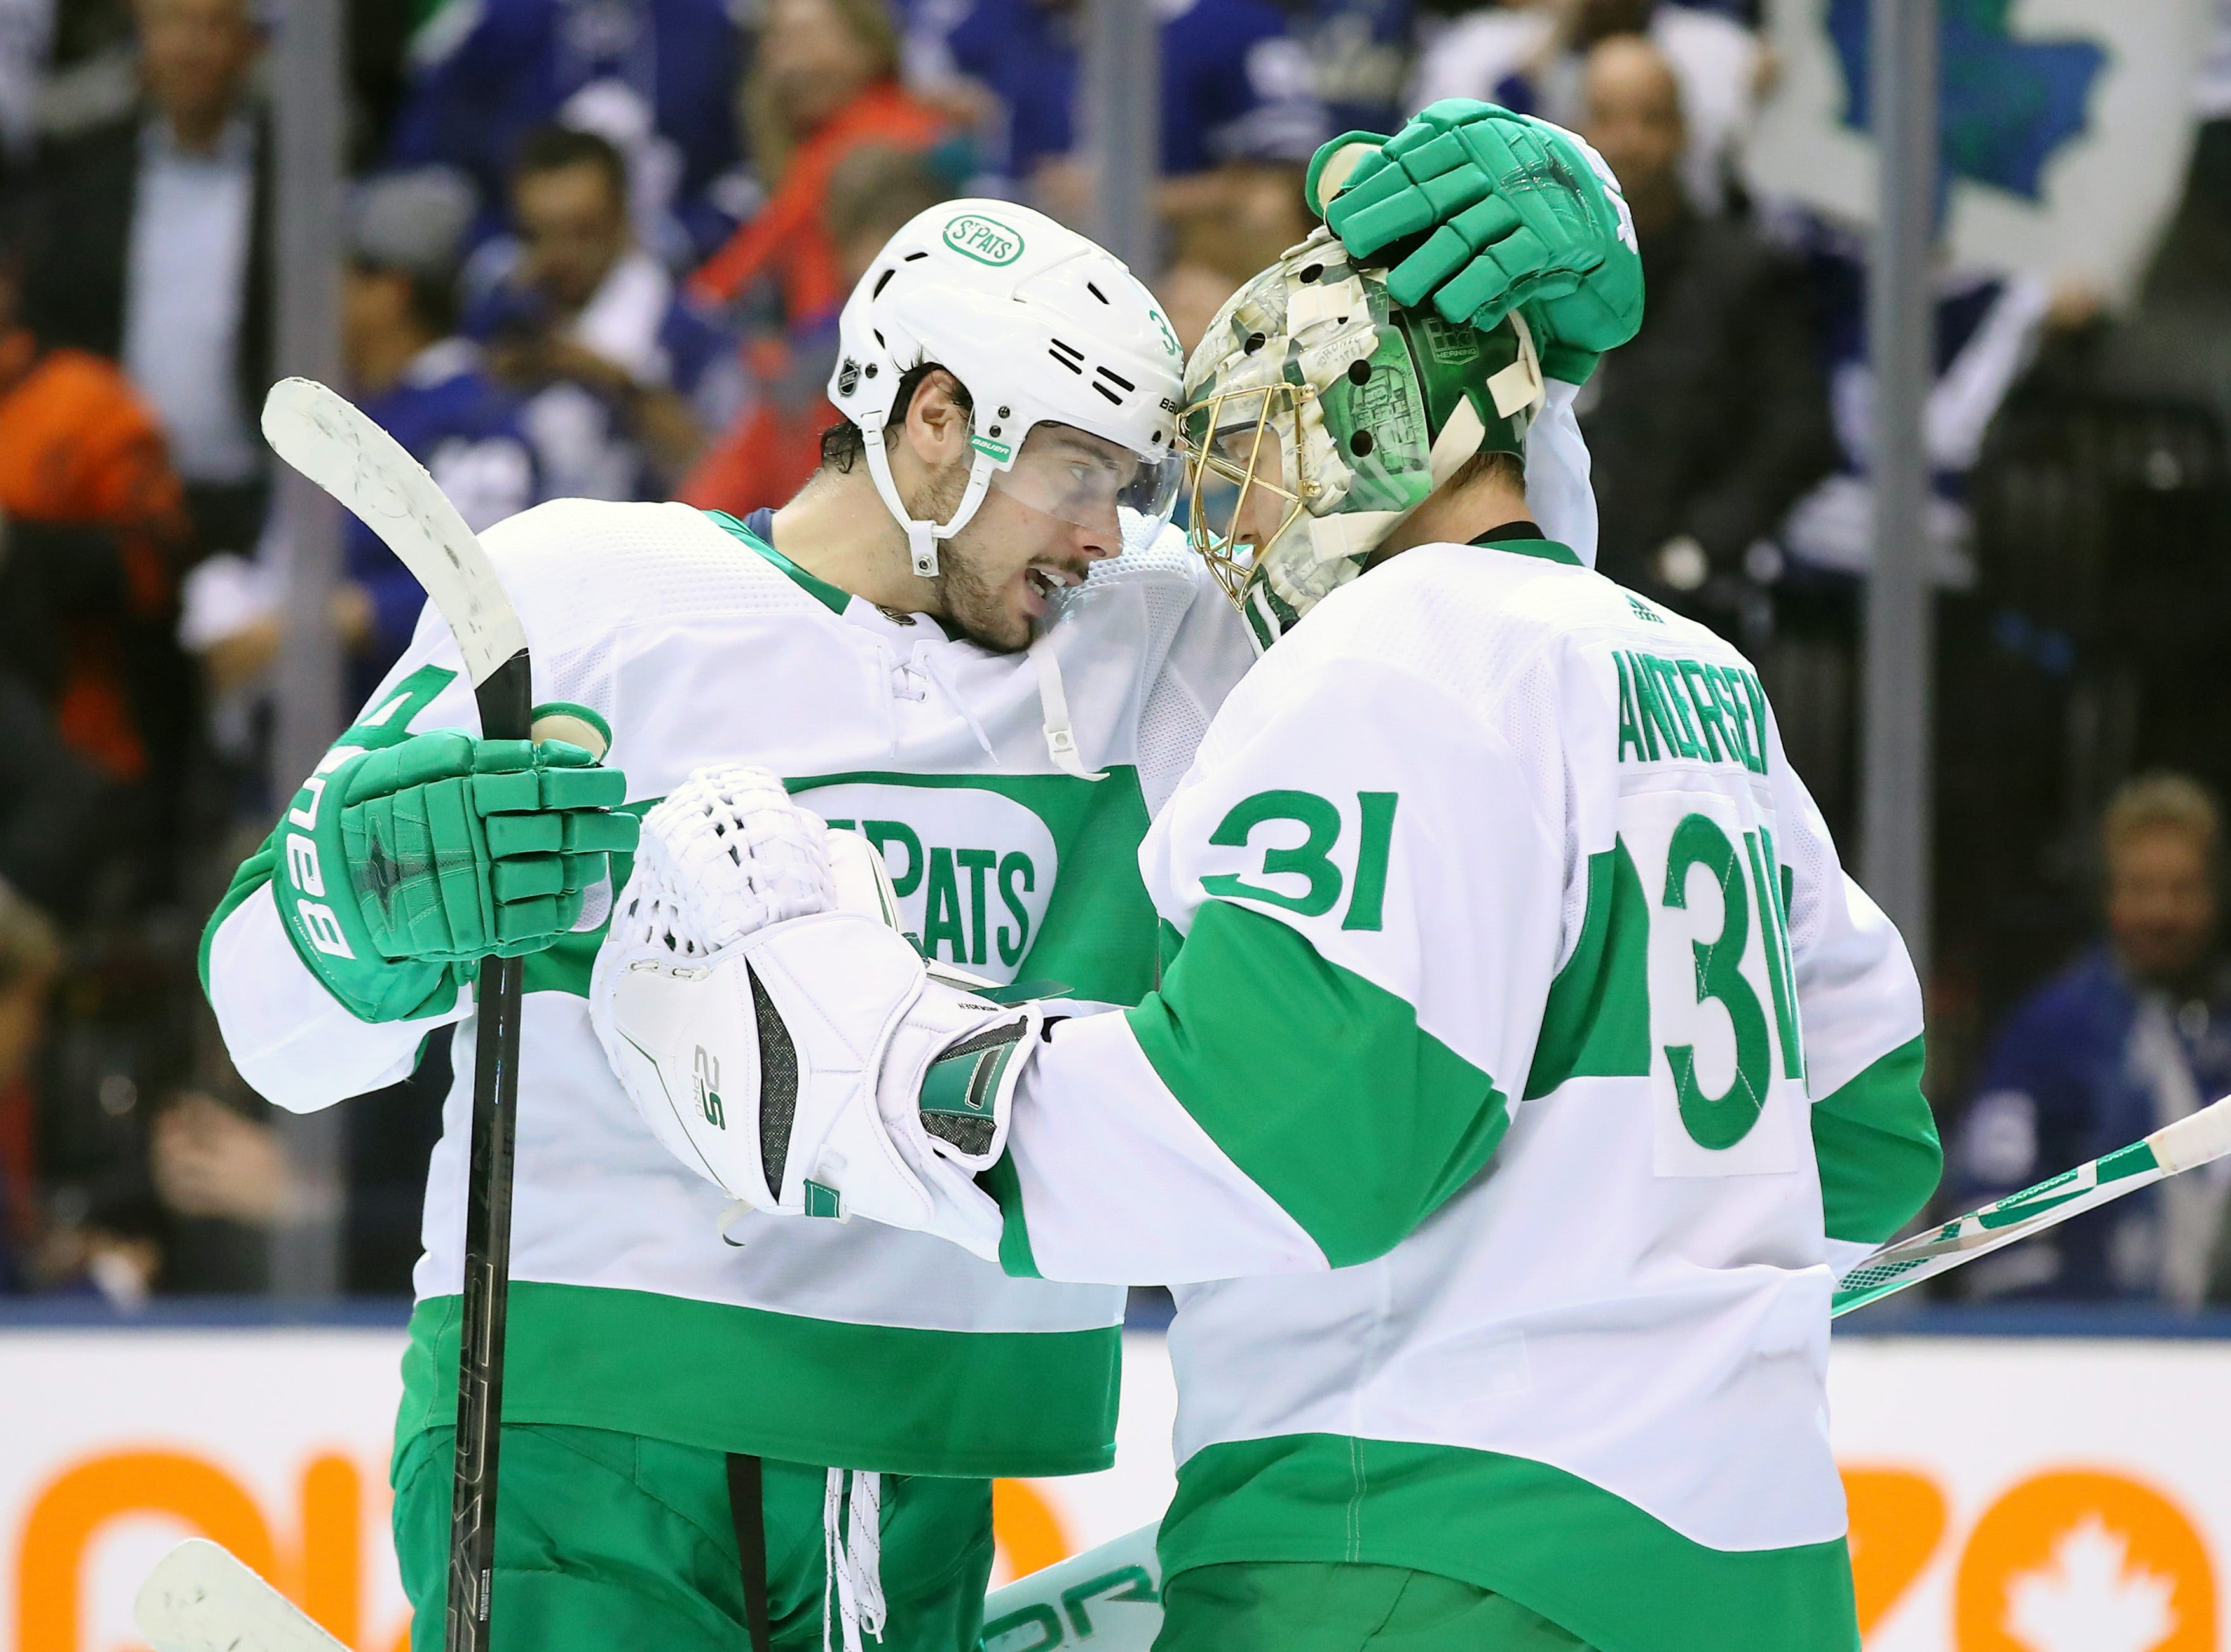 March 15: Toronto Maple Leafs center Auston Matthews, left, and goalie Frederik Andersen, wearing St. Pats jersey, celebrate their come-from-behind victory against the Philadelphia Flyers. Matthews scored twice in the game.